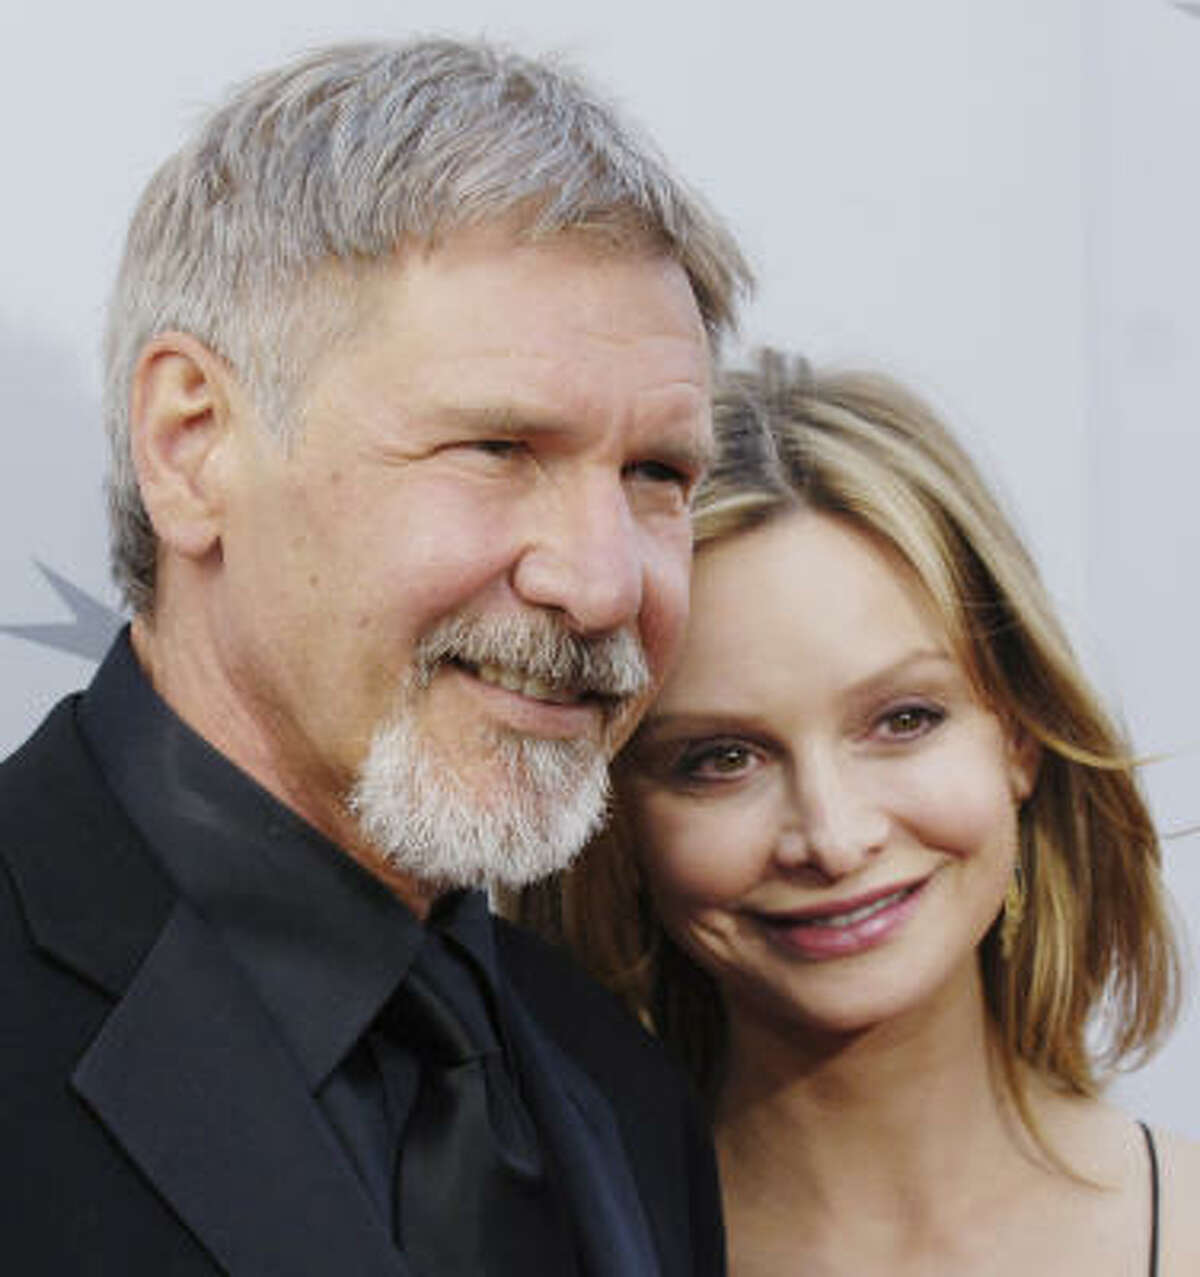 Han no longer flies solo. Harrison Ford, and Calista Flockhart finally tied the knot, in a wedding presided over by New Mexico's governor. Ford is 22 years older than his Mrs.